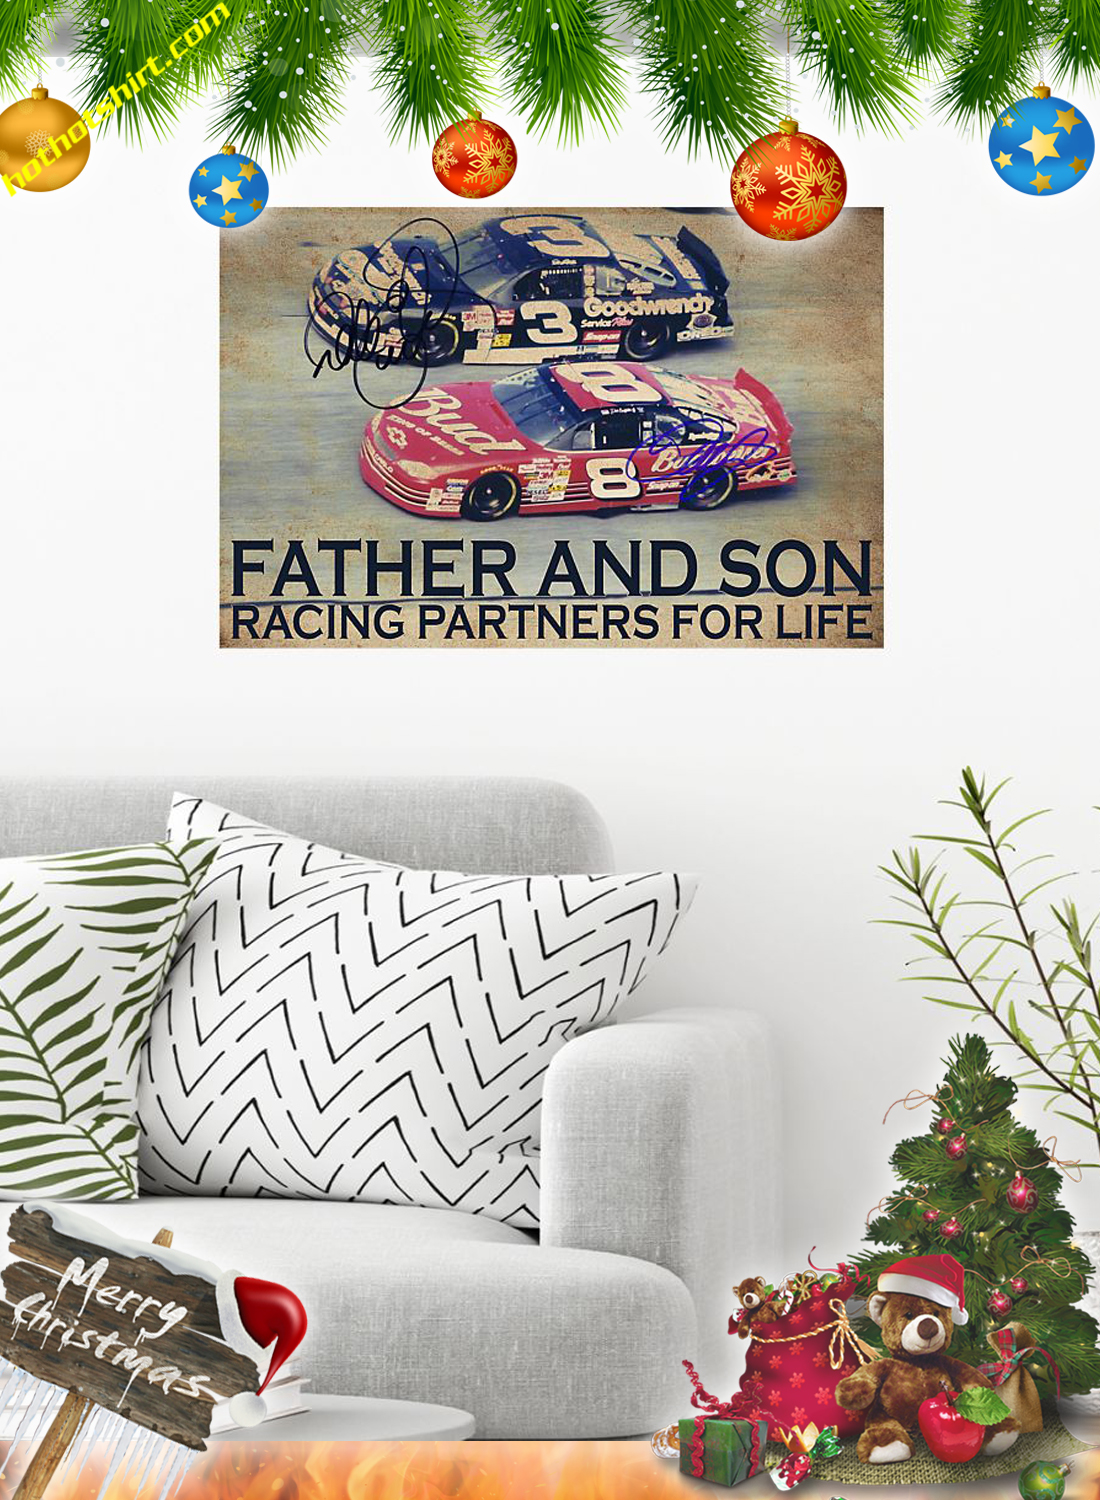 Father and son racing partners for life poster 1